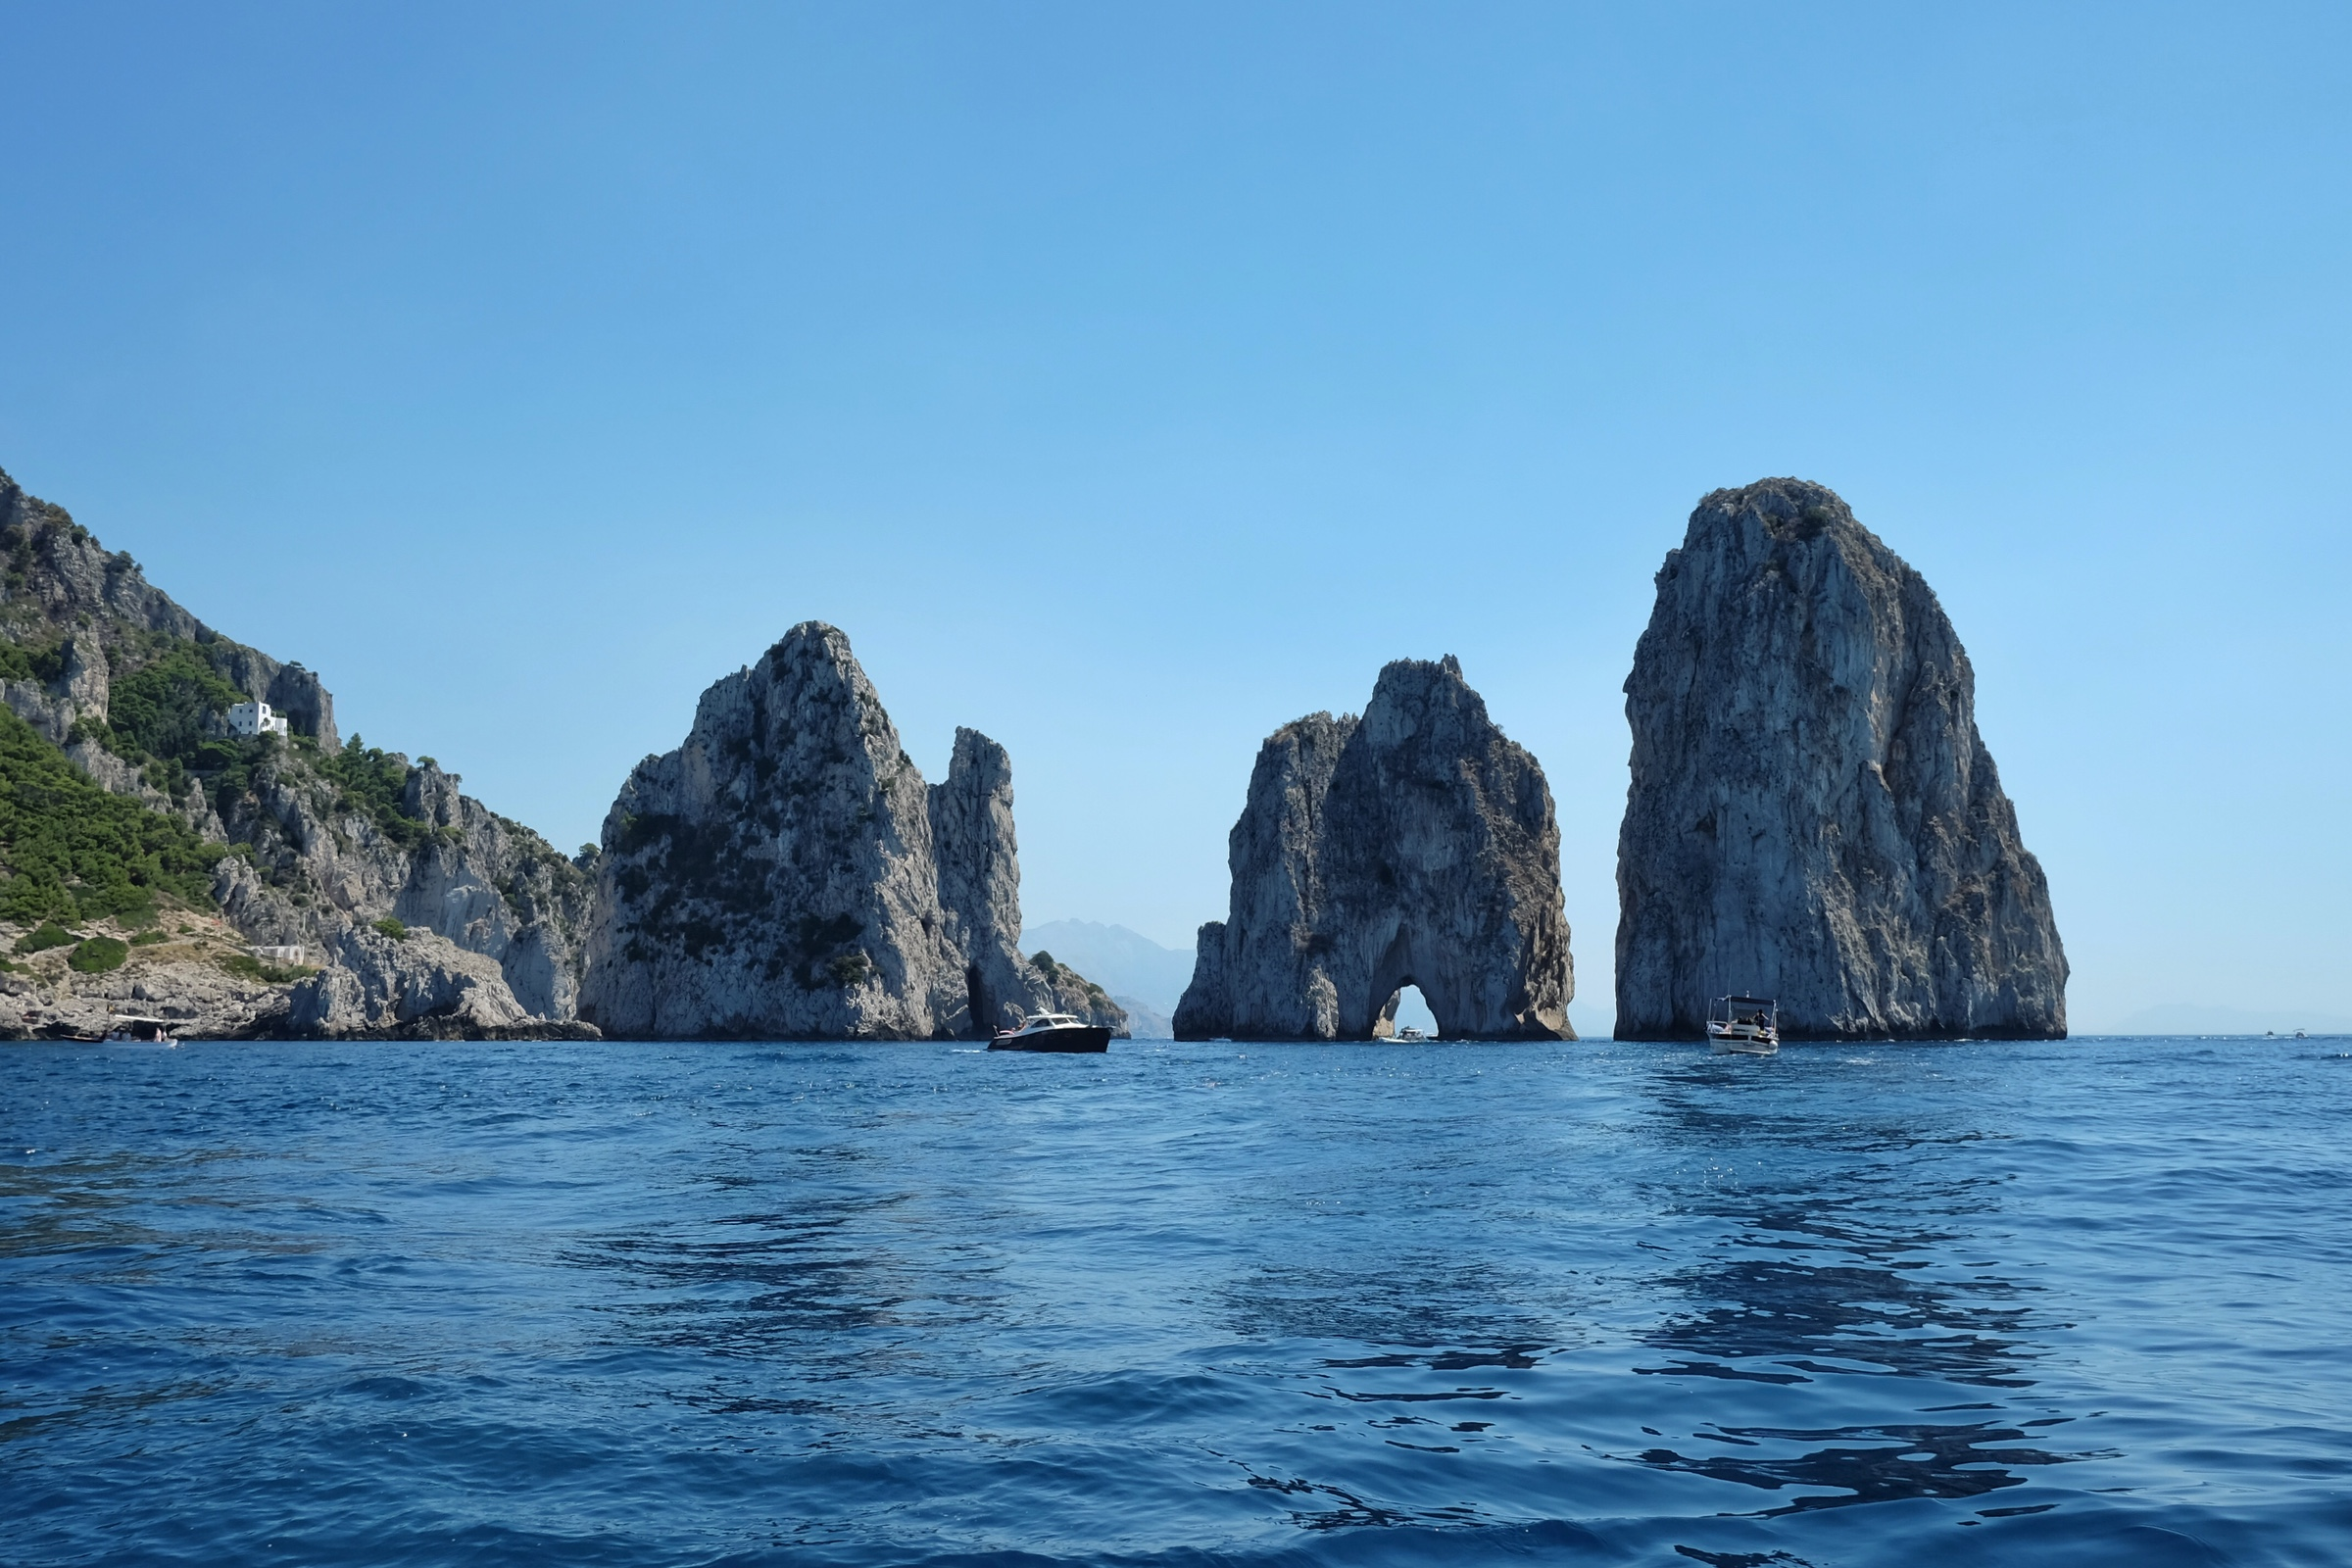 The Faraglioni are the famous three rocks off of Capri.